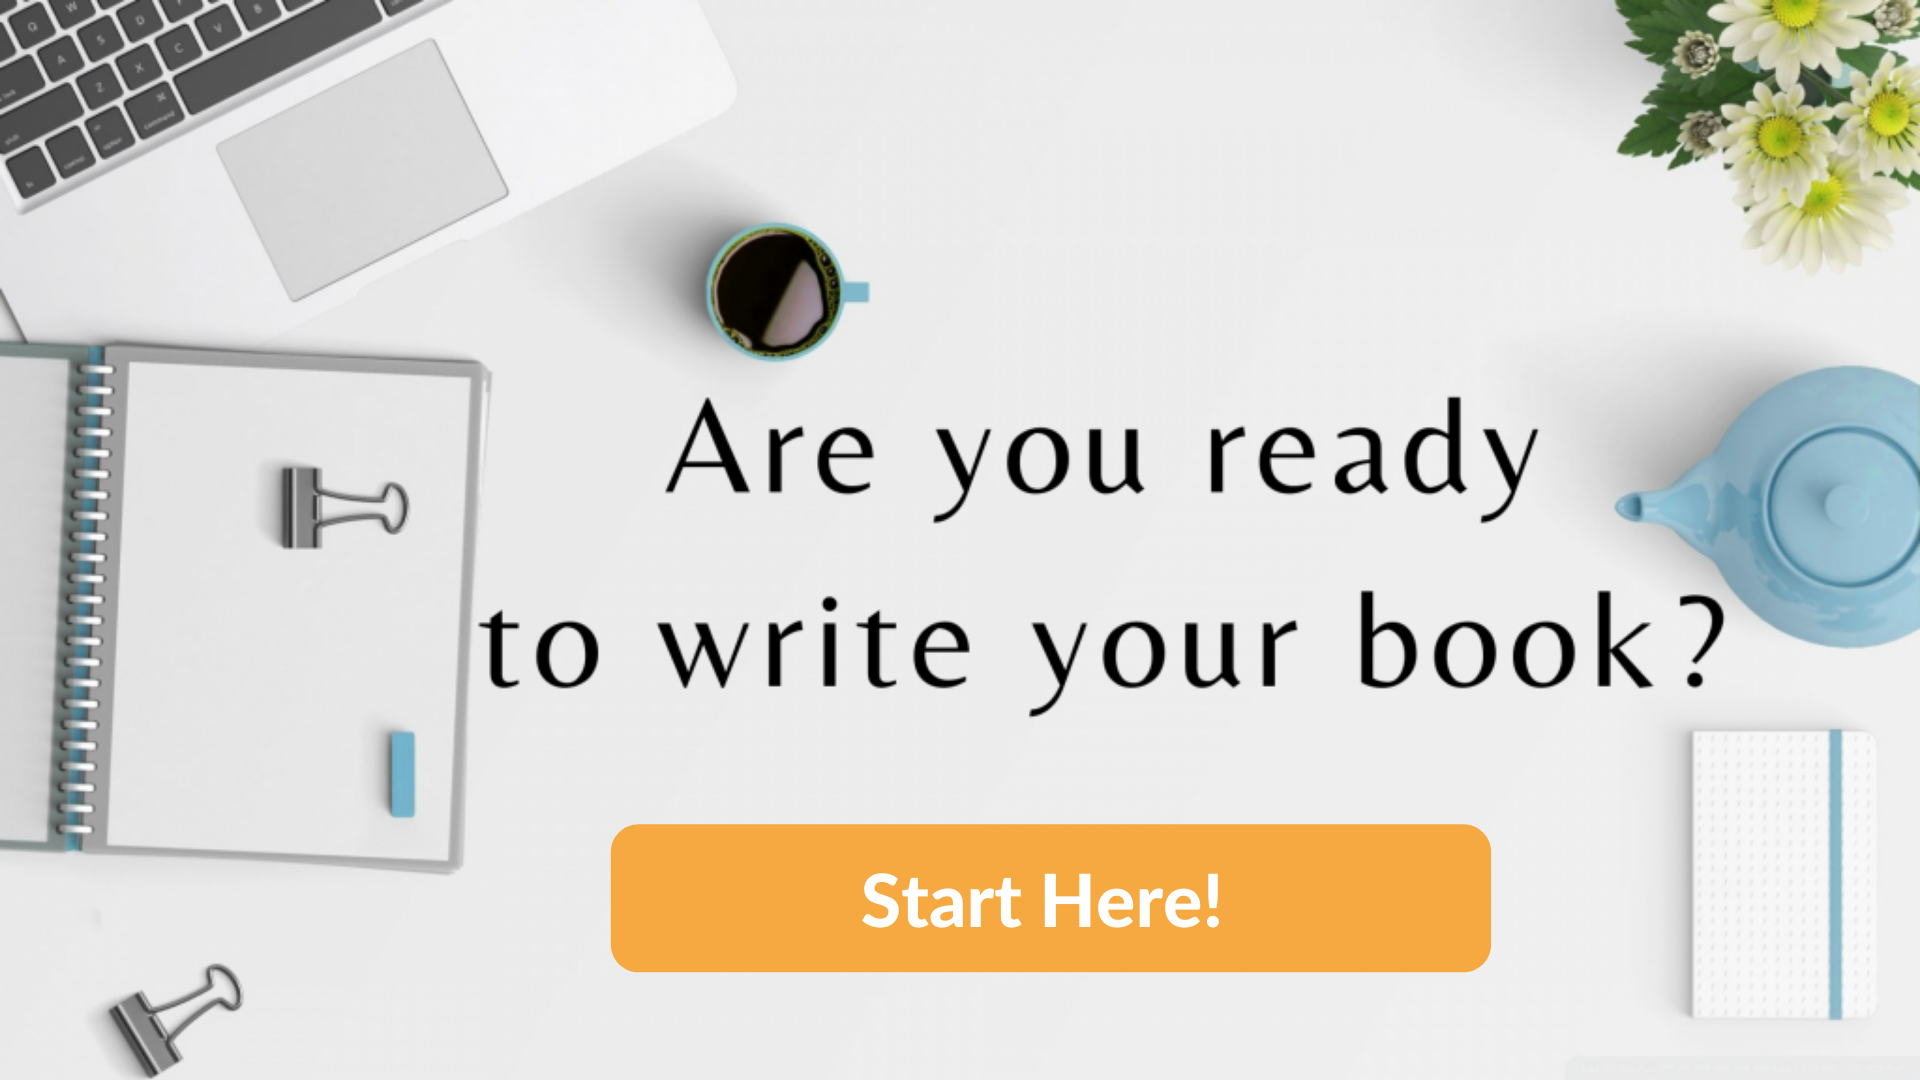 Hire someone to write your book